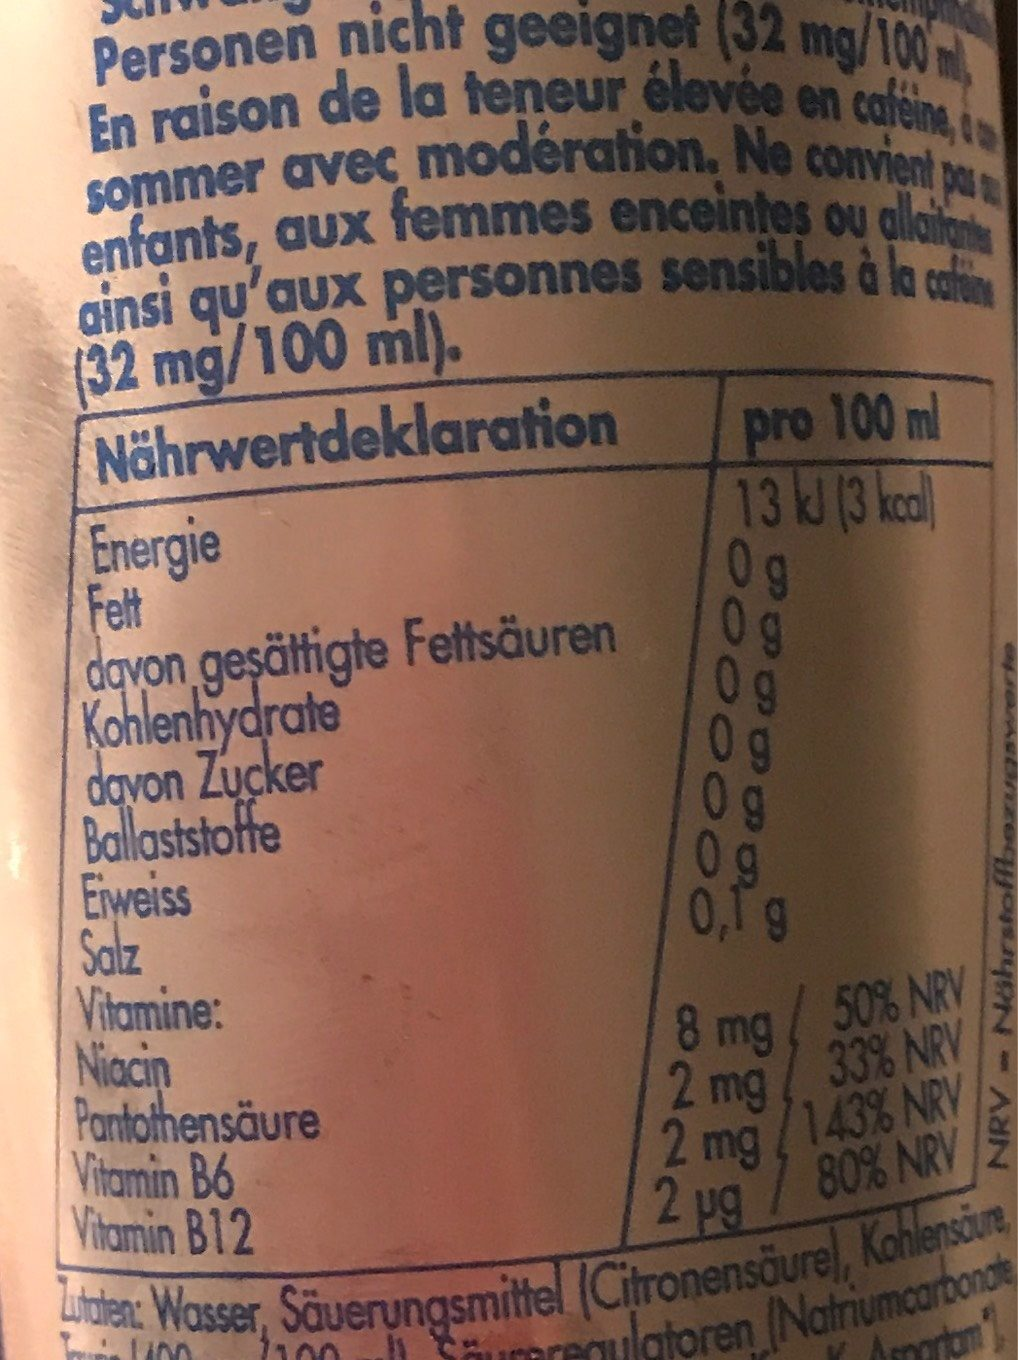 Red Bull sugar free - Nutrition facts